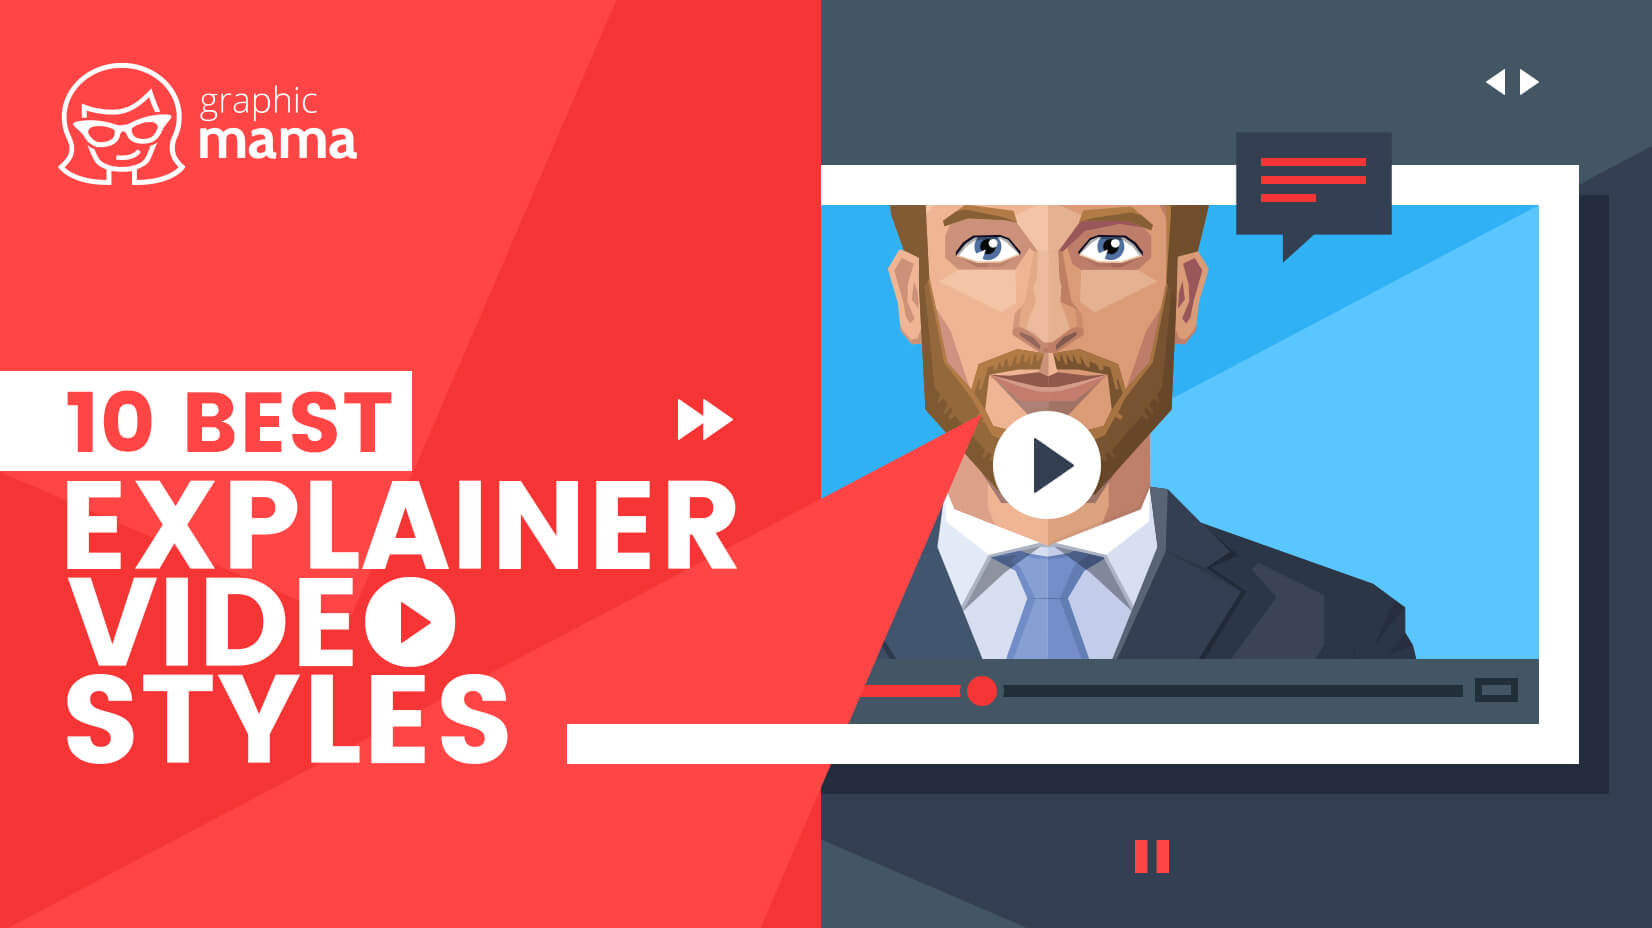 10 Best Explainer Video Styles for Your Business